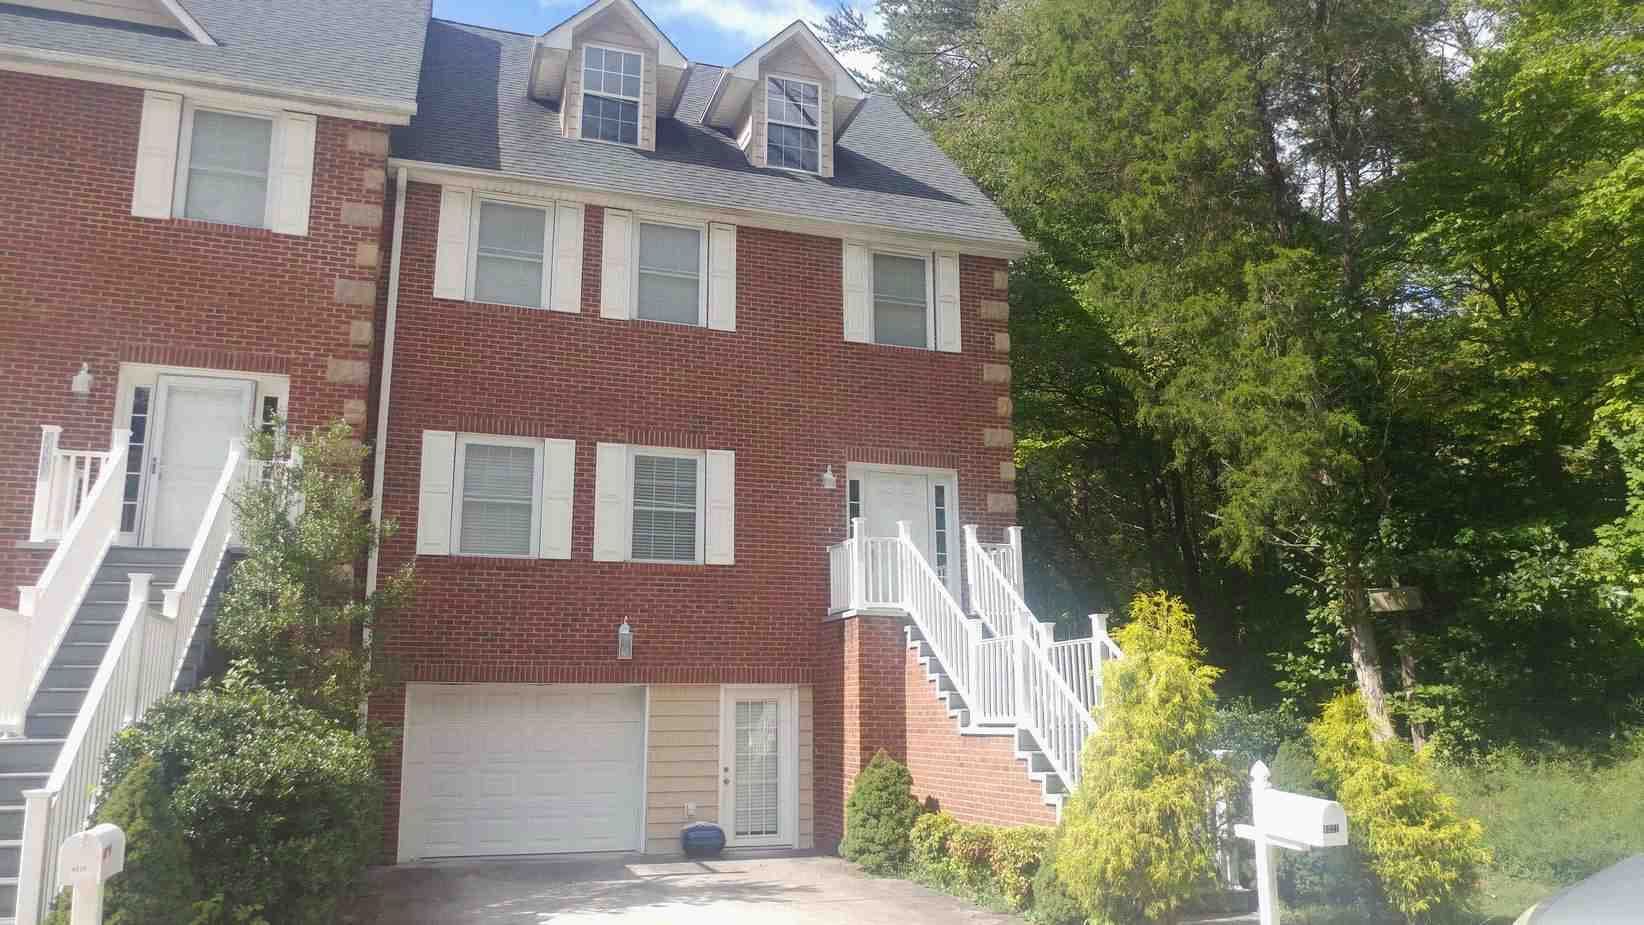 Live Auction: Townhouse-Style Condo (4221 Craigleath Way) In Knoxville, TN